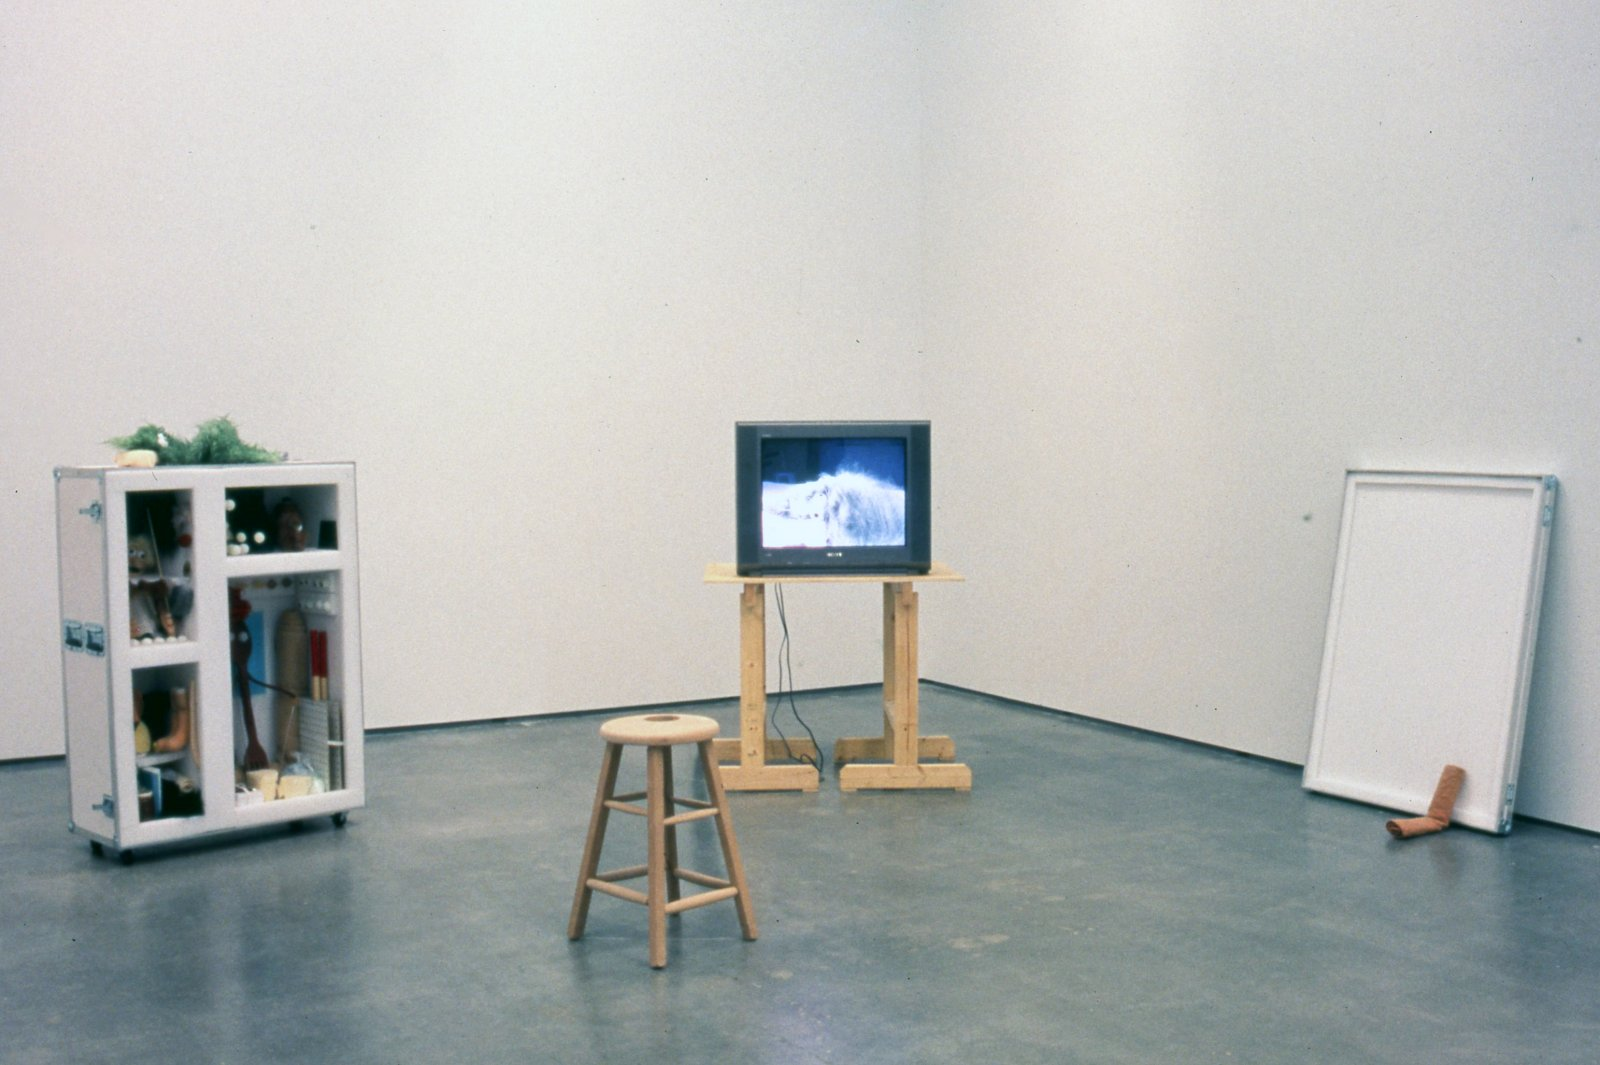 Geoffrey Farmer,Puppet Kit (Personality Workshop), 2001, crate, various media and video, dimensions variable